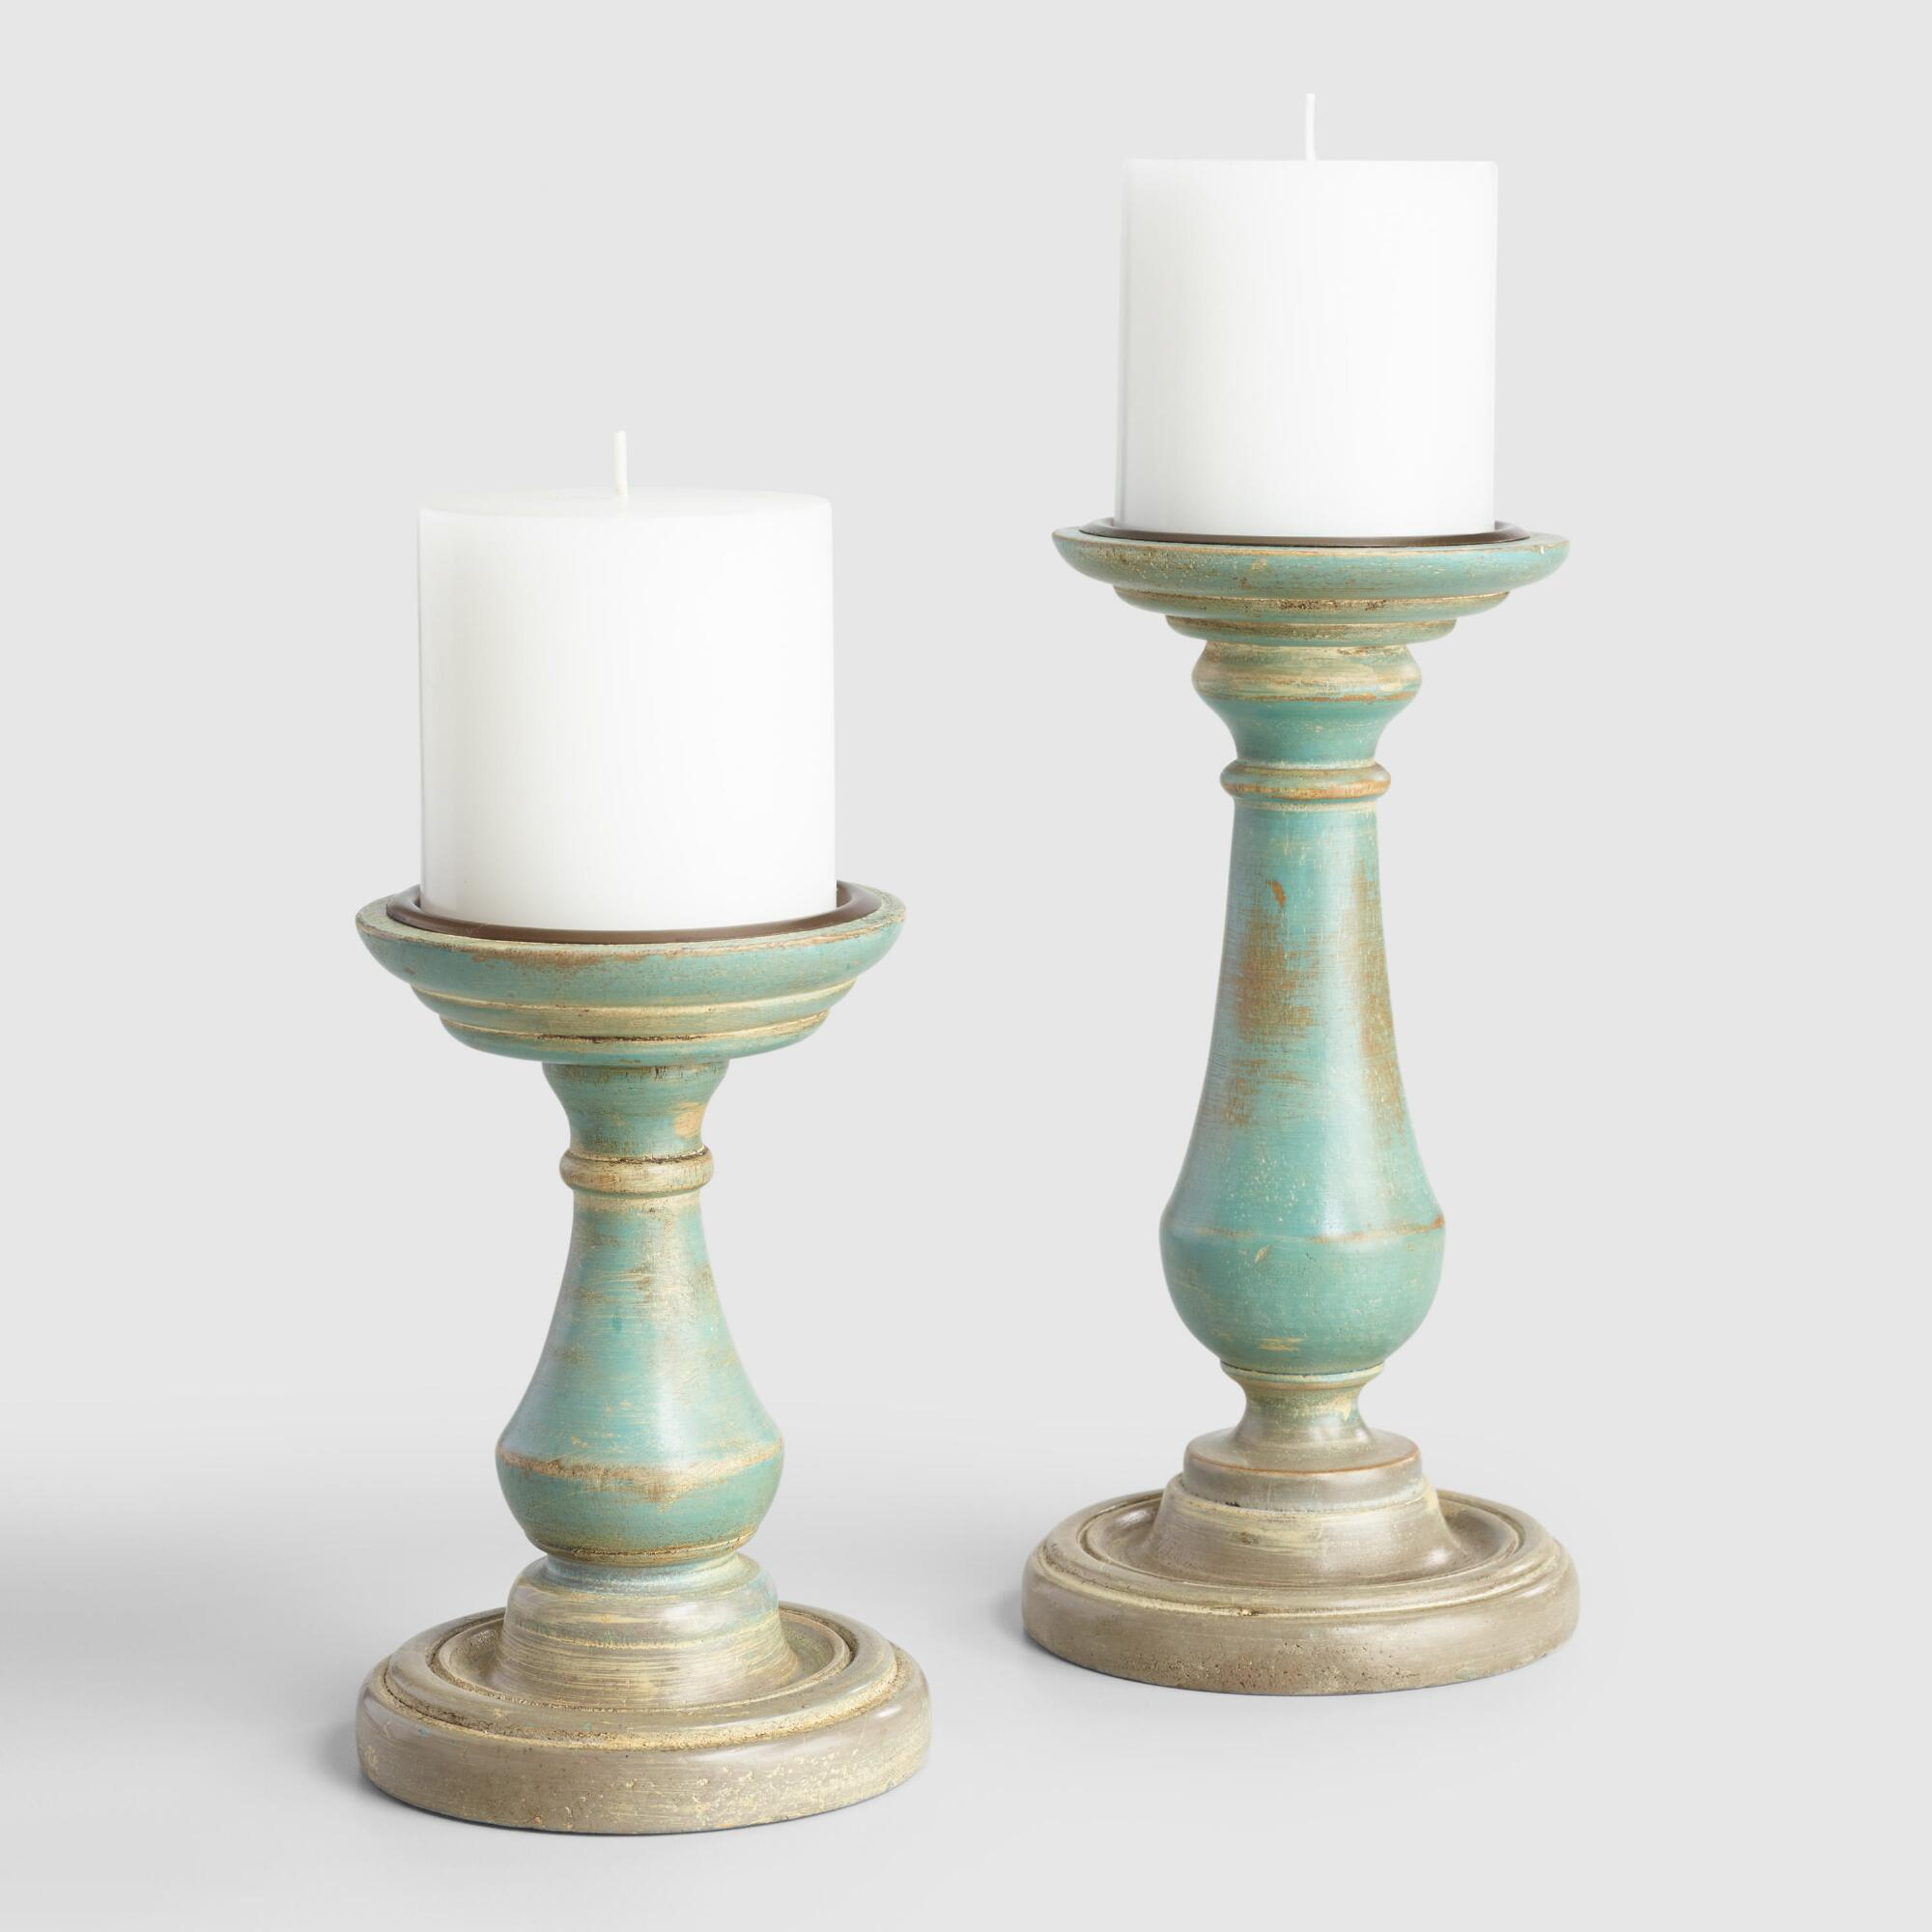 Antique Blue and Gray Wood Mallory Pillar Candleholder: Blue/Gray - Small by World Market Small